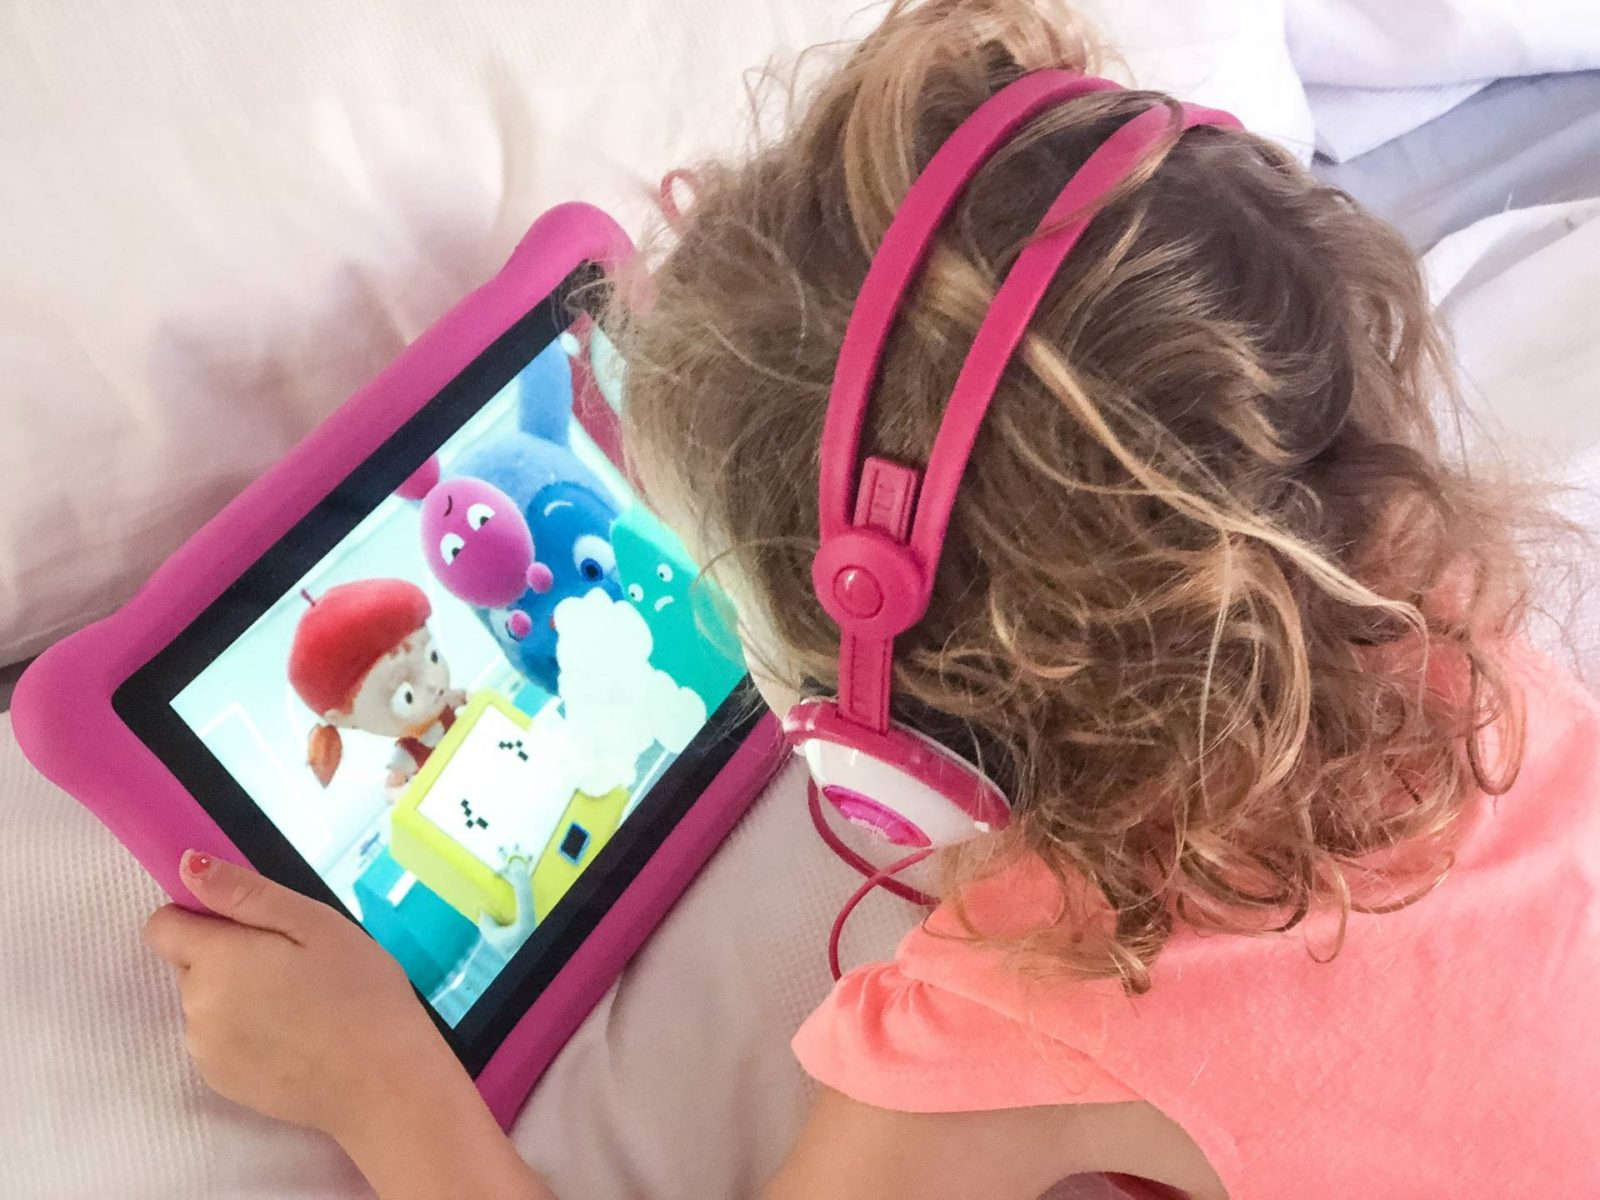 The best tablet for kids of all ages – Amazon Fire